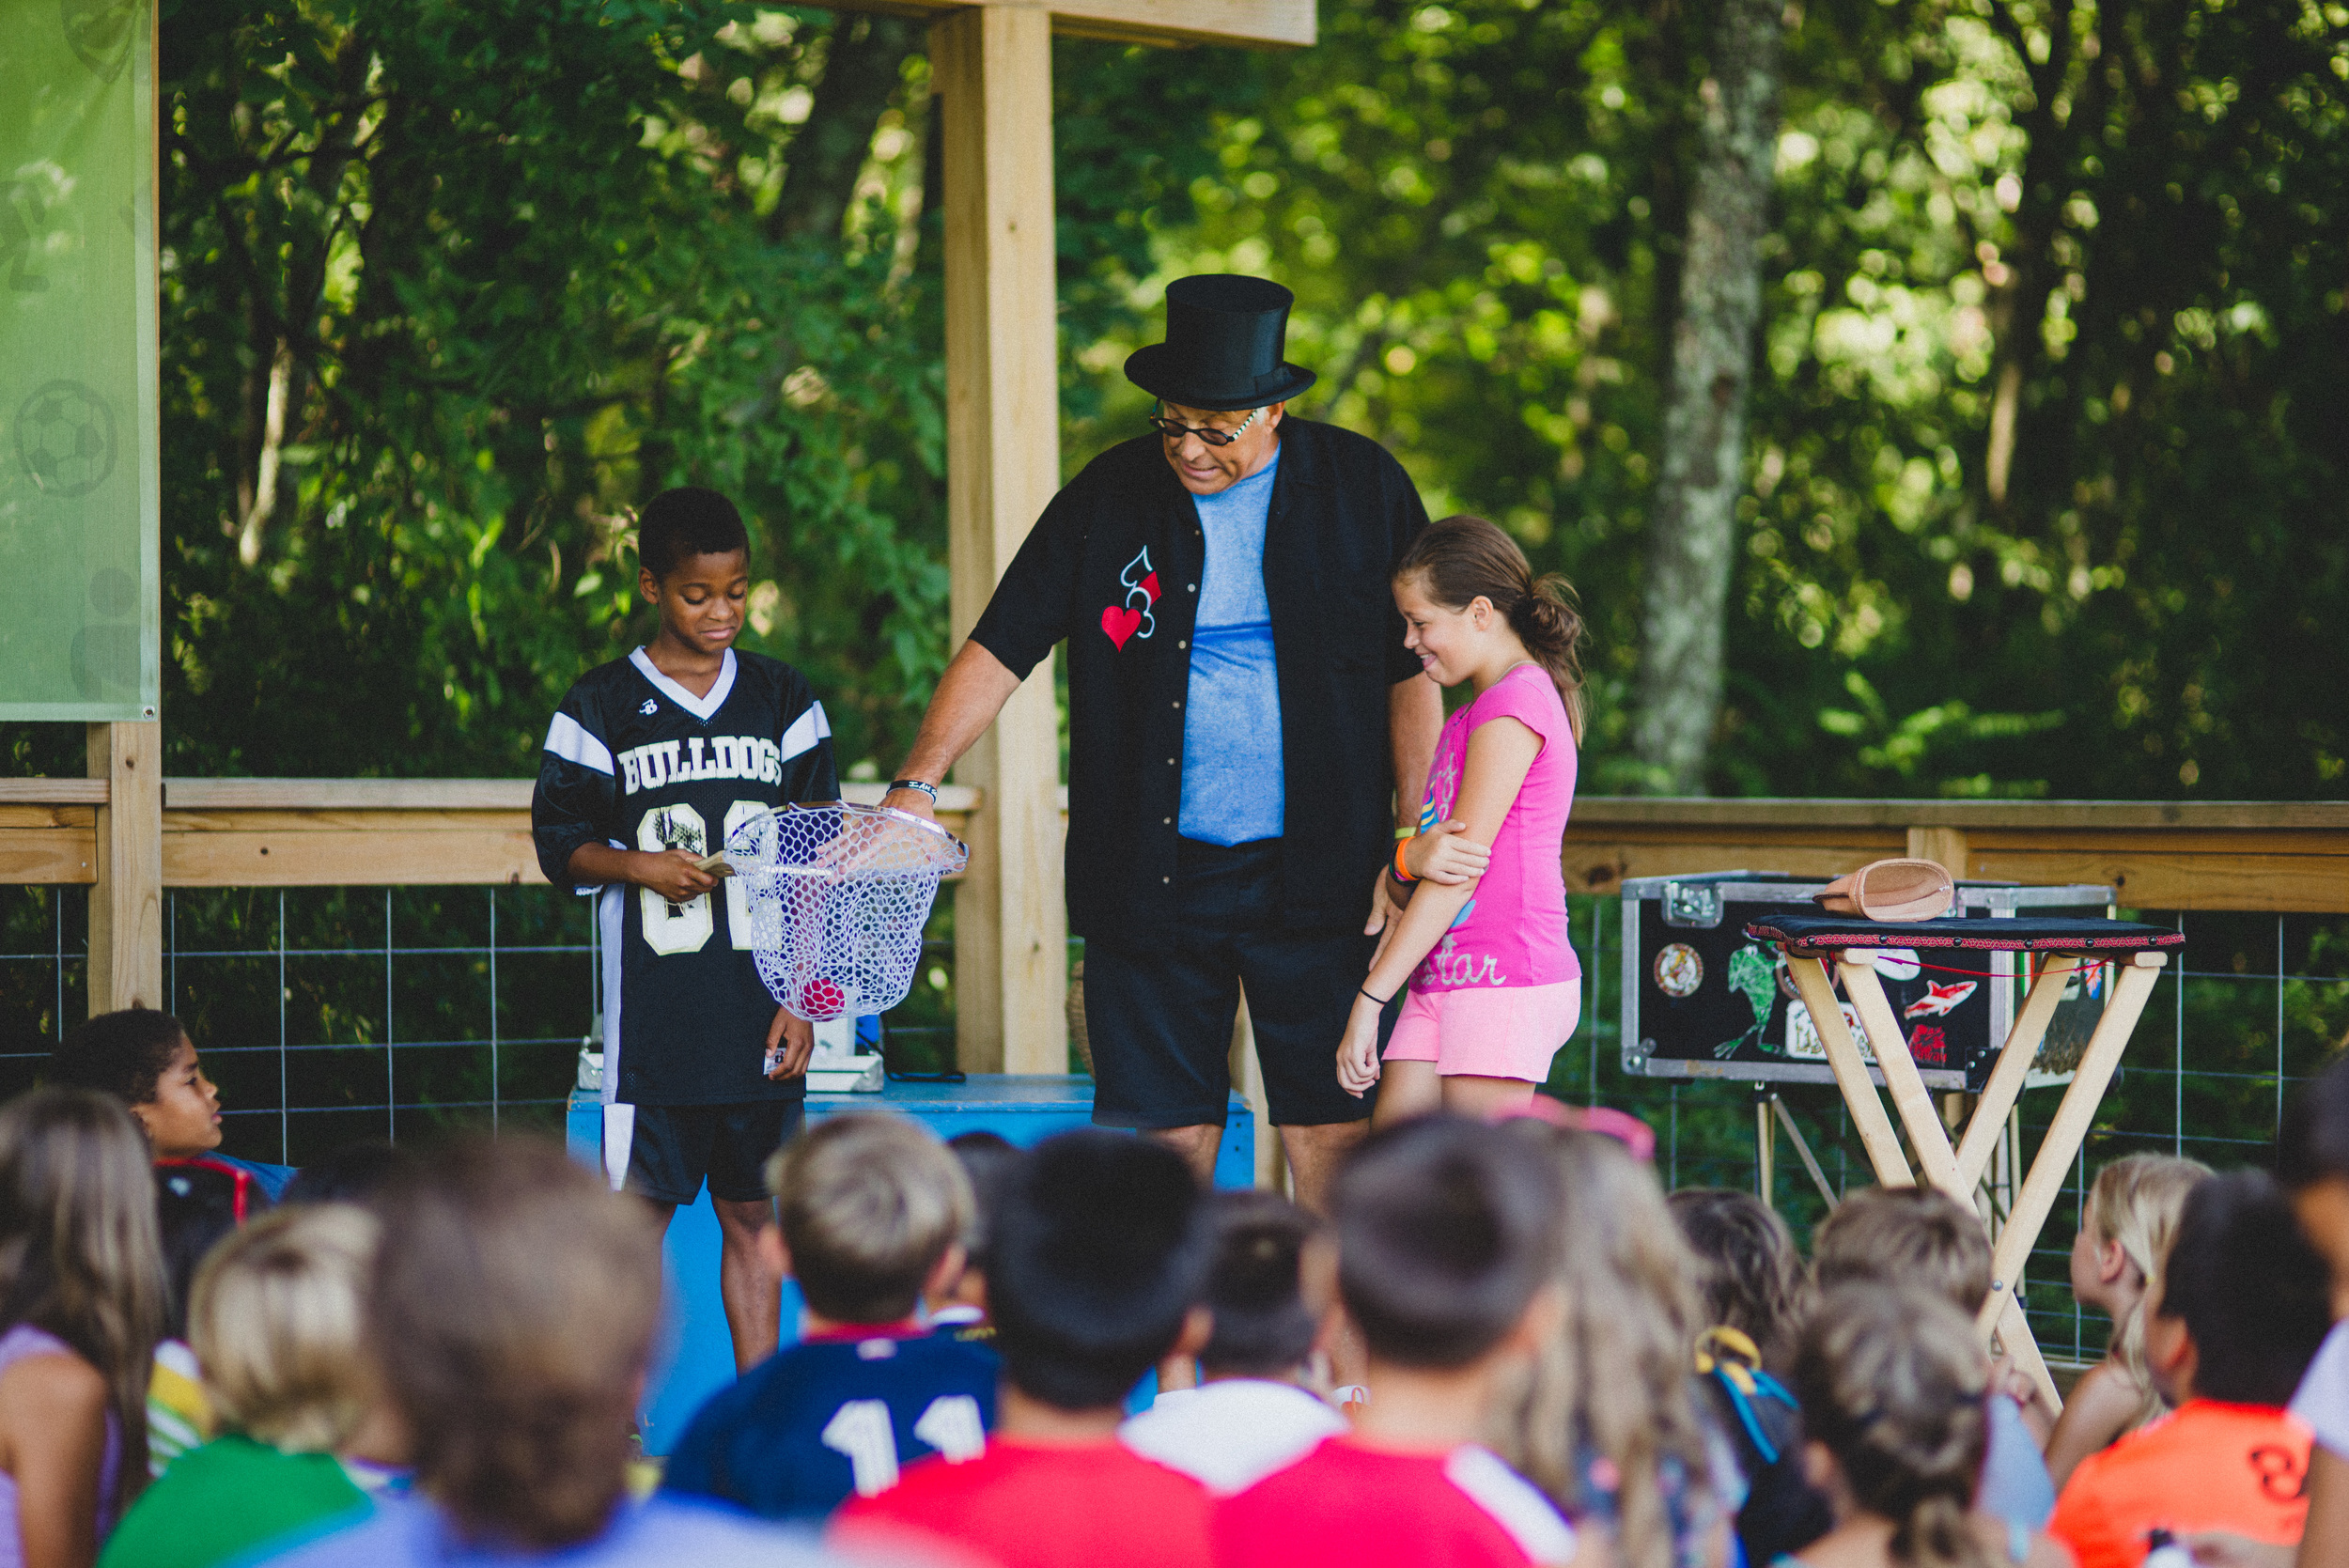 Volunteers like World Class Magician Stephen Bargatze make the campers feel loved and special on a whole other level by   sharing their time, talents, energy, and unforgettable performances.